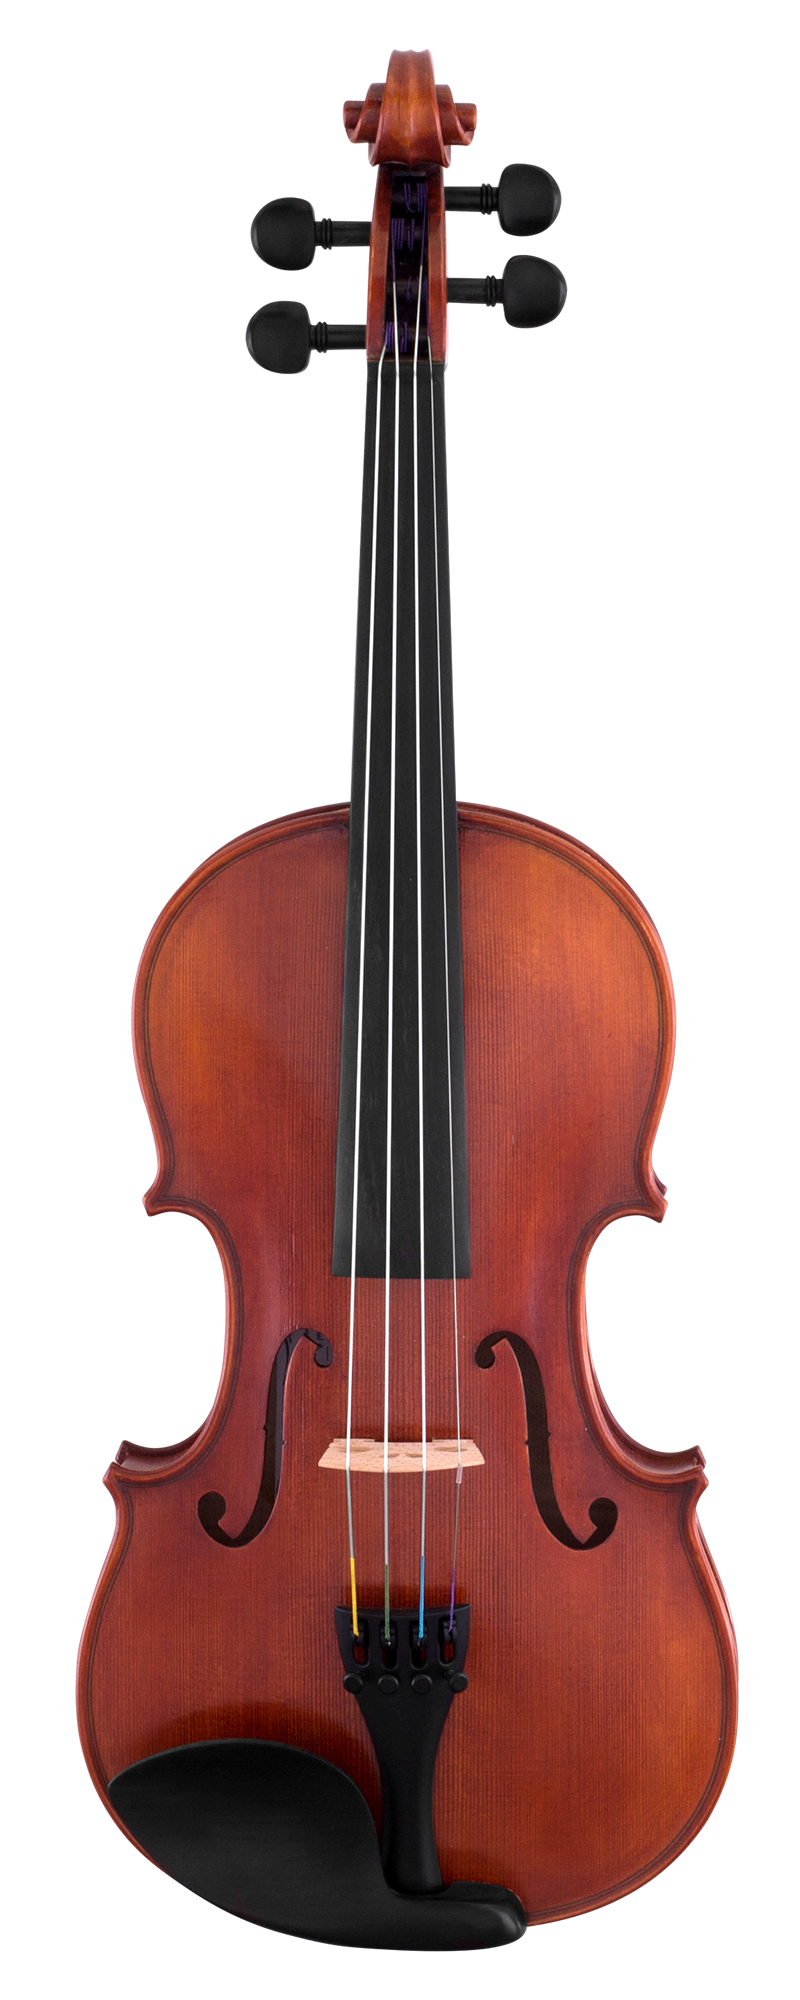 SR61 Scherl & Roth Step Up Violin